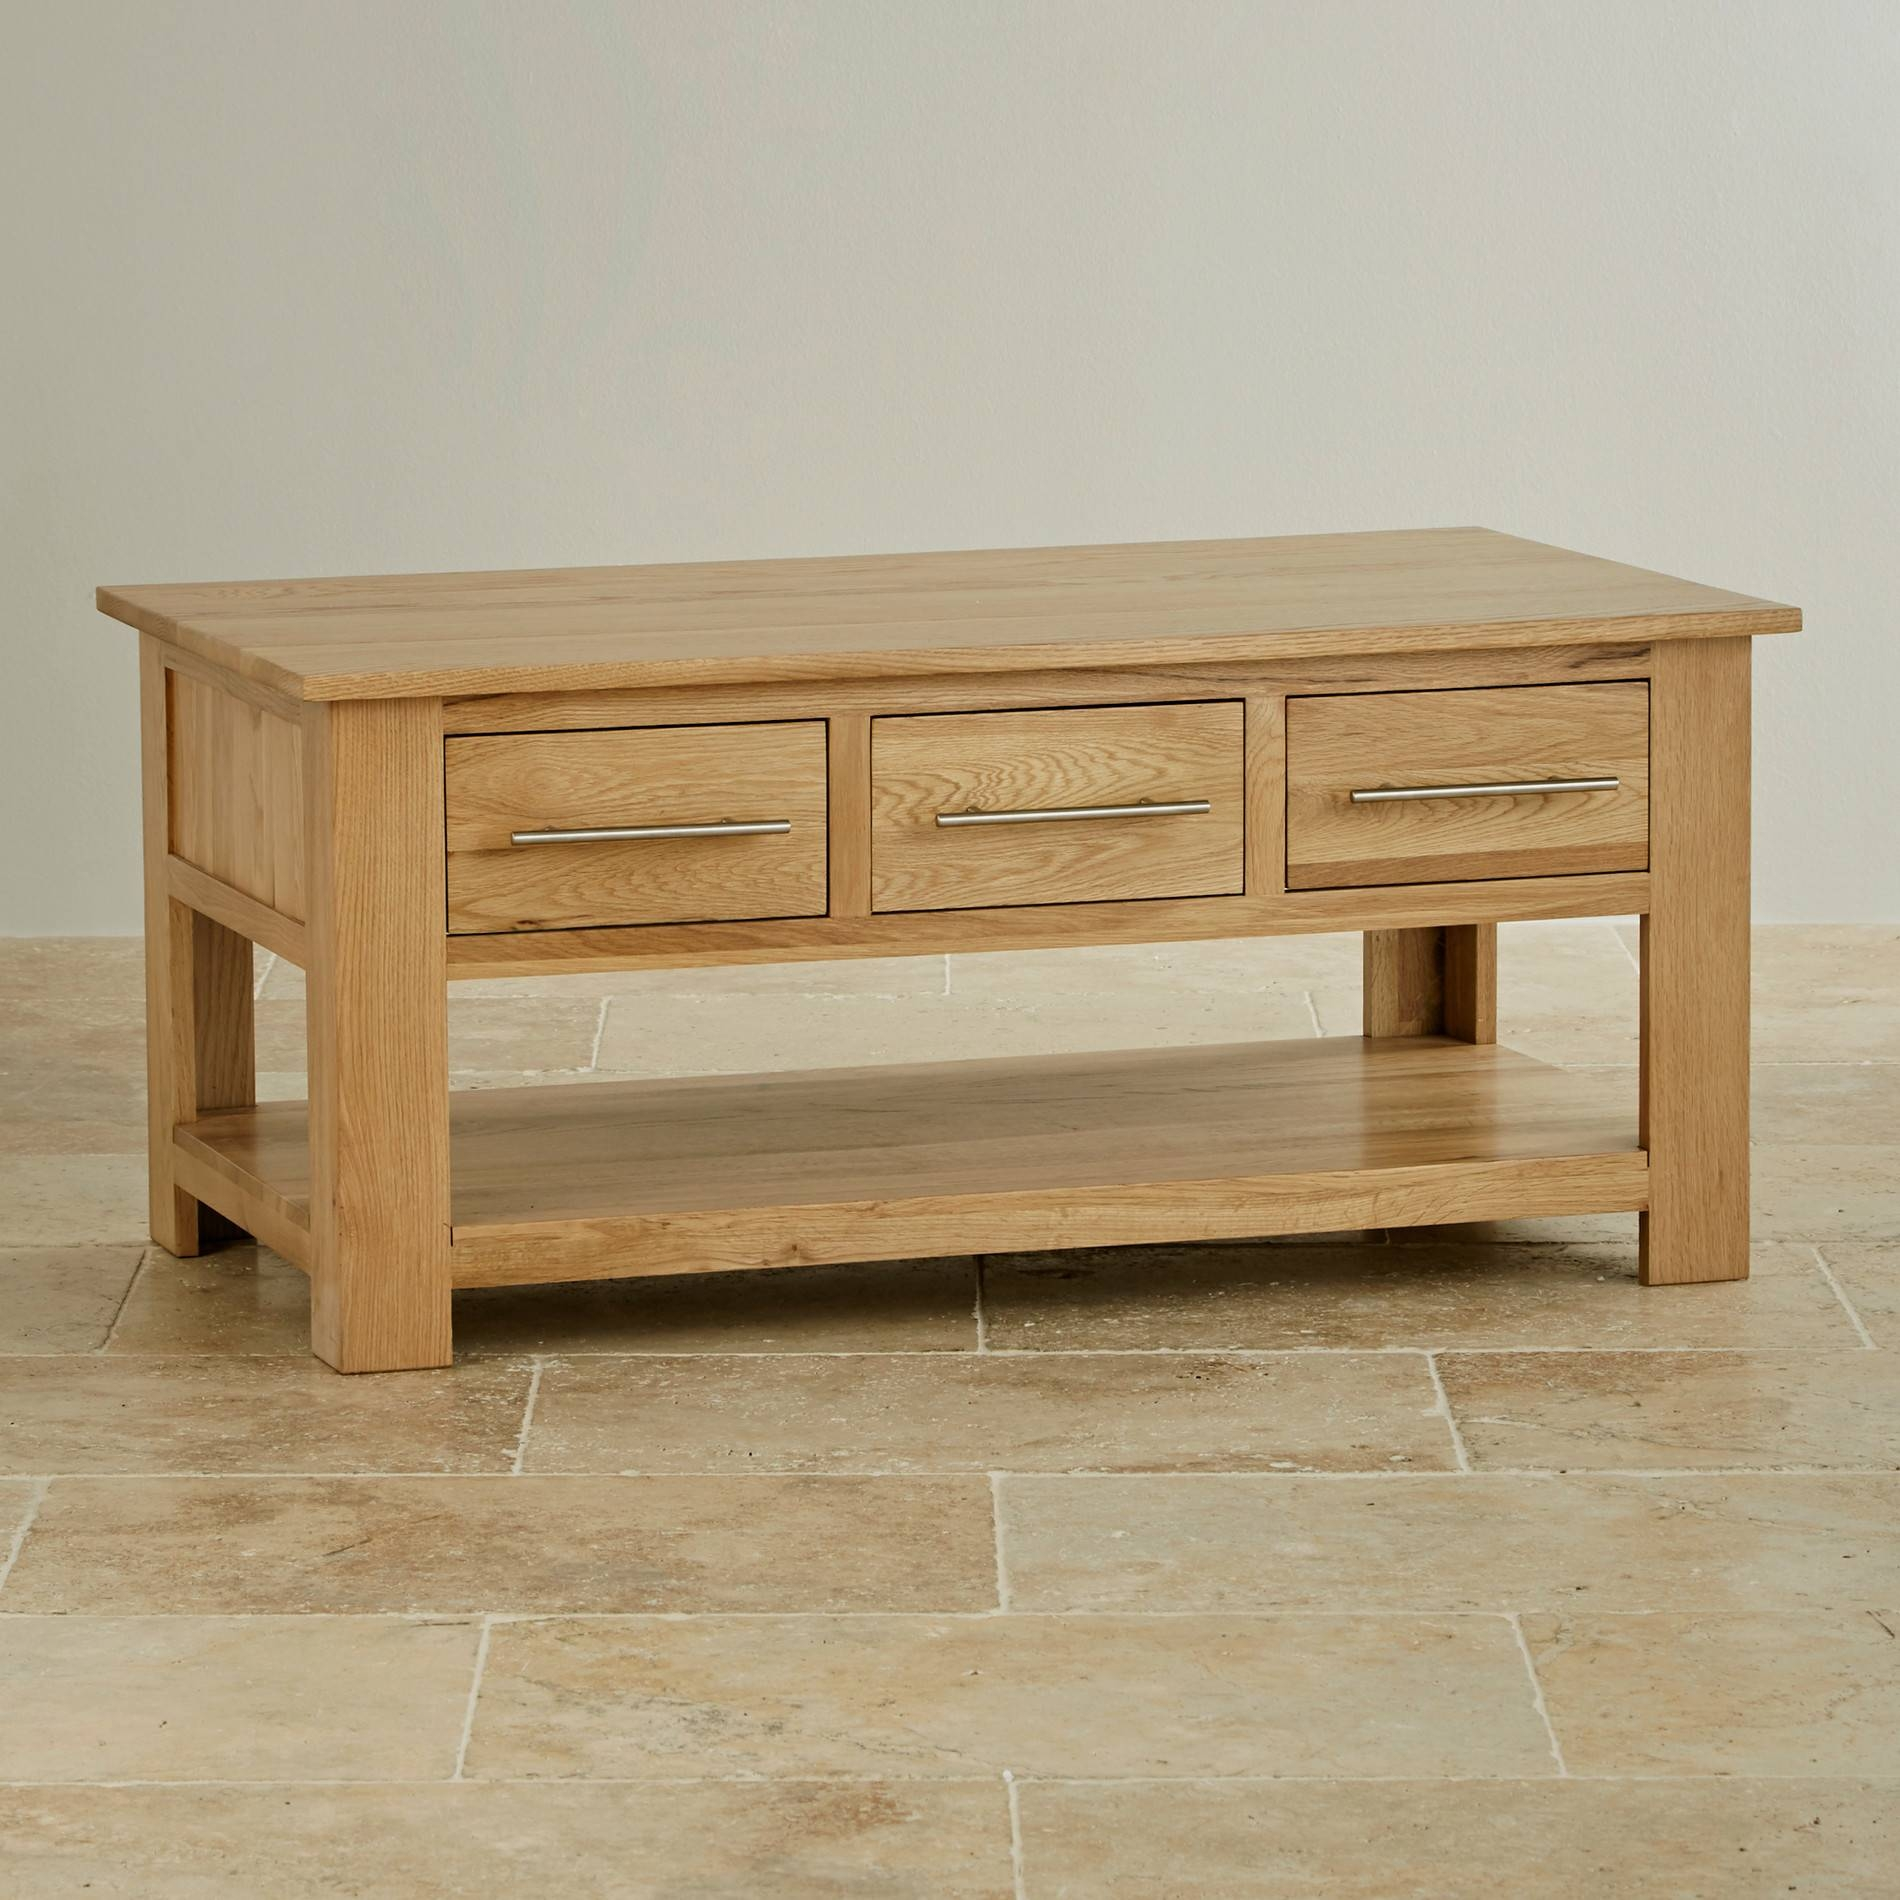 Rivermead 6 Drawer Coffee Table In Natural Solid Oak Pertaining To Solid Oak Coffee Table With Storage (View 13 of 15)